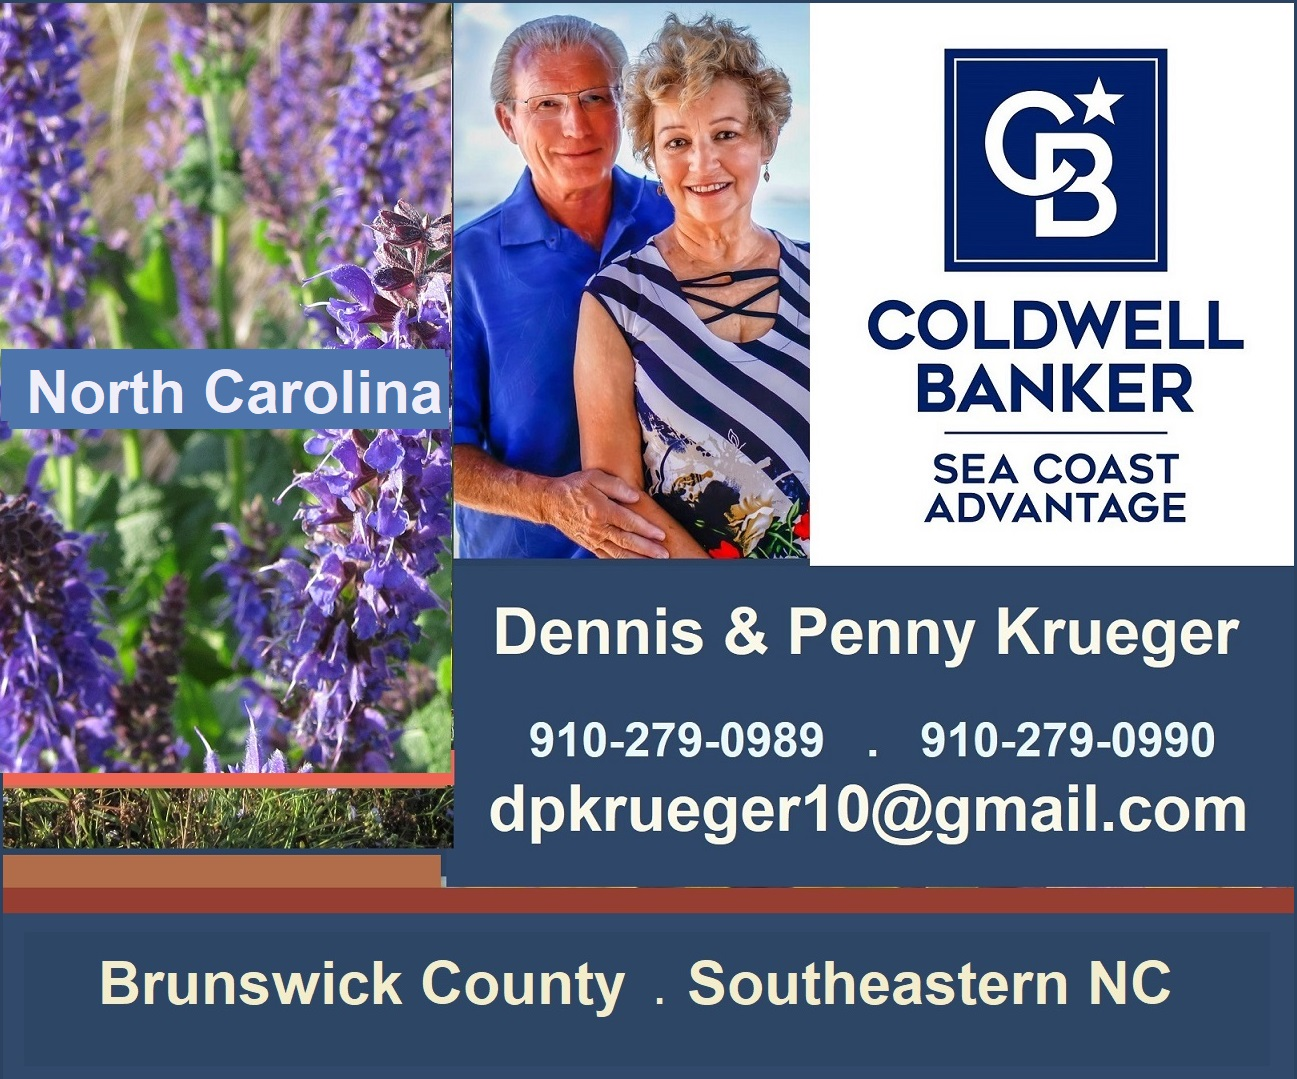 NC Real Estate . Coldwell Banker Sea Coast Advantage . Krueger Team